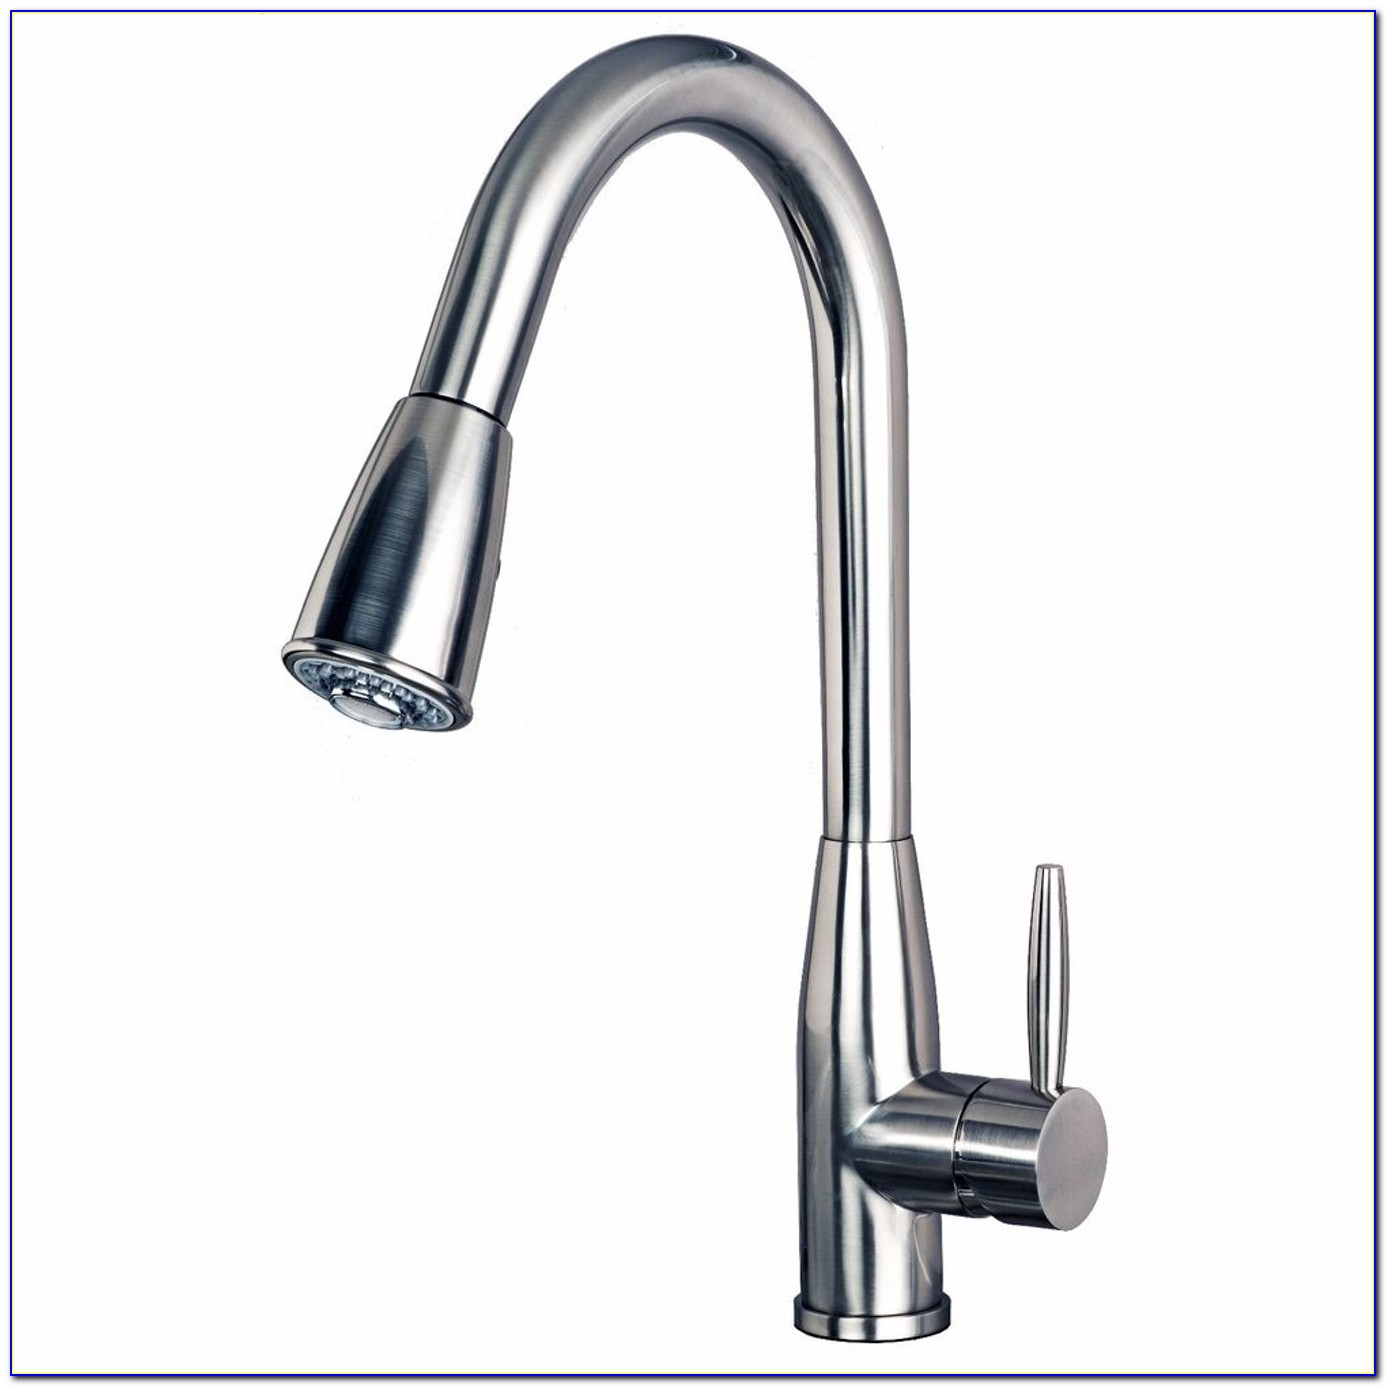 Delta Kitchen Faucet With Pull Down Sprayer